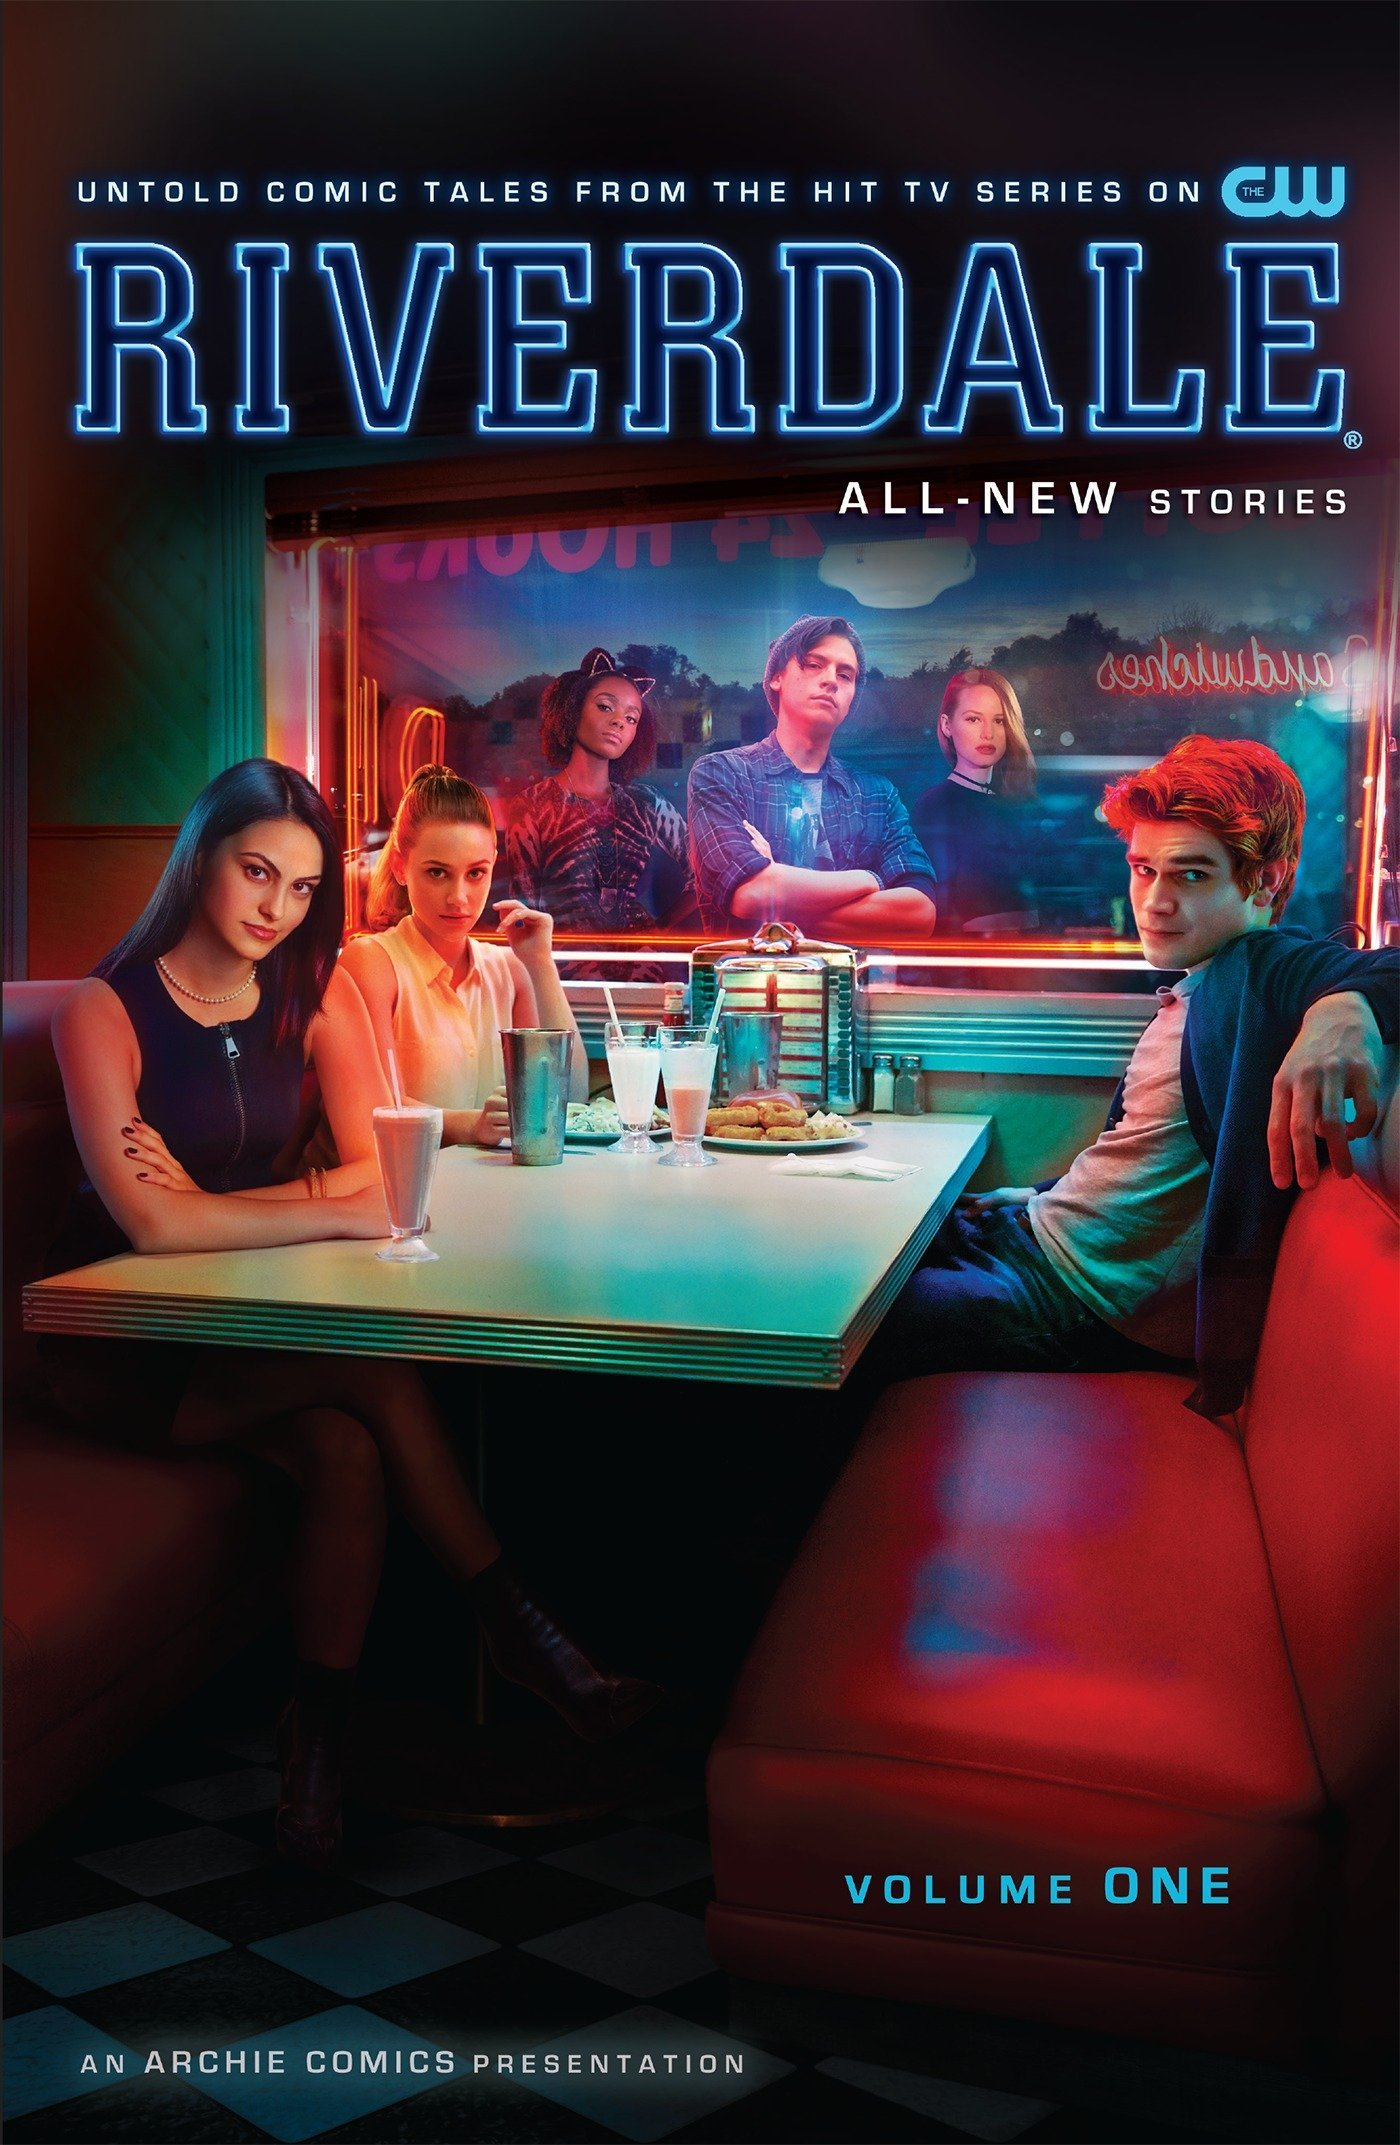 Riverdale Vol. 1 by Archie Comics